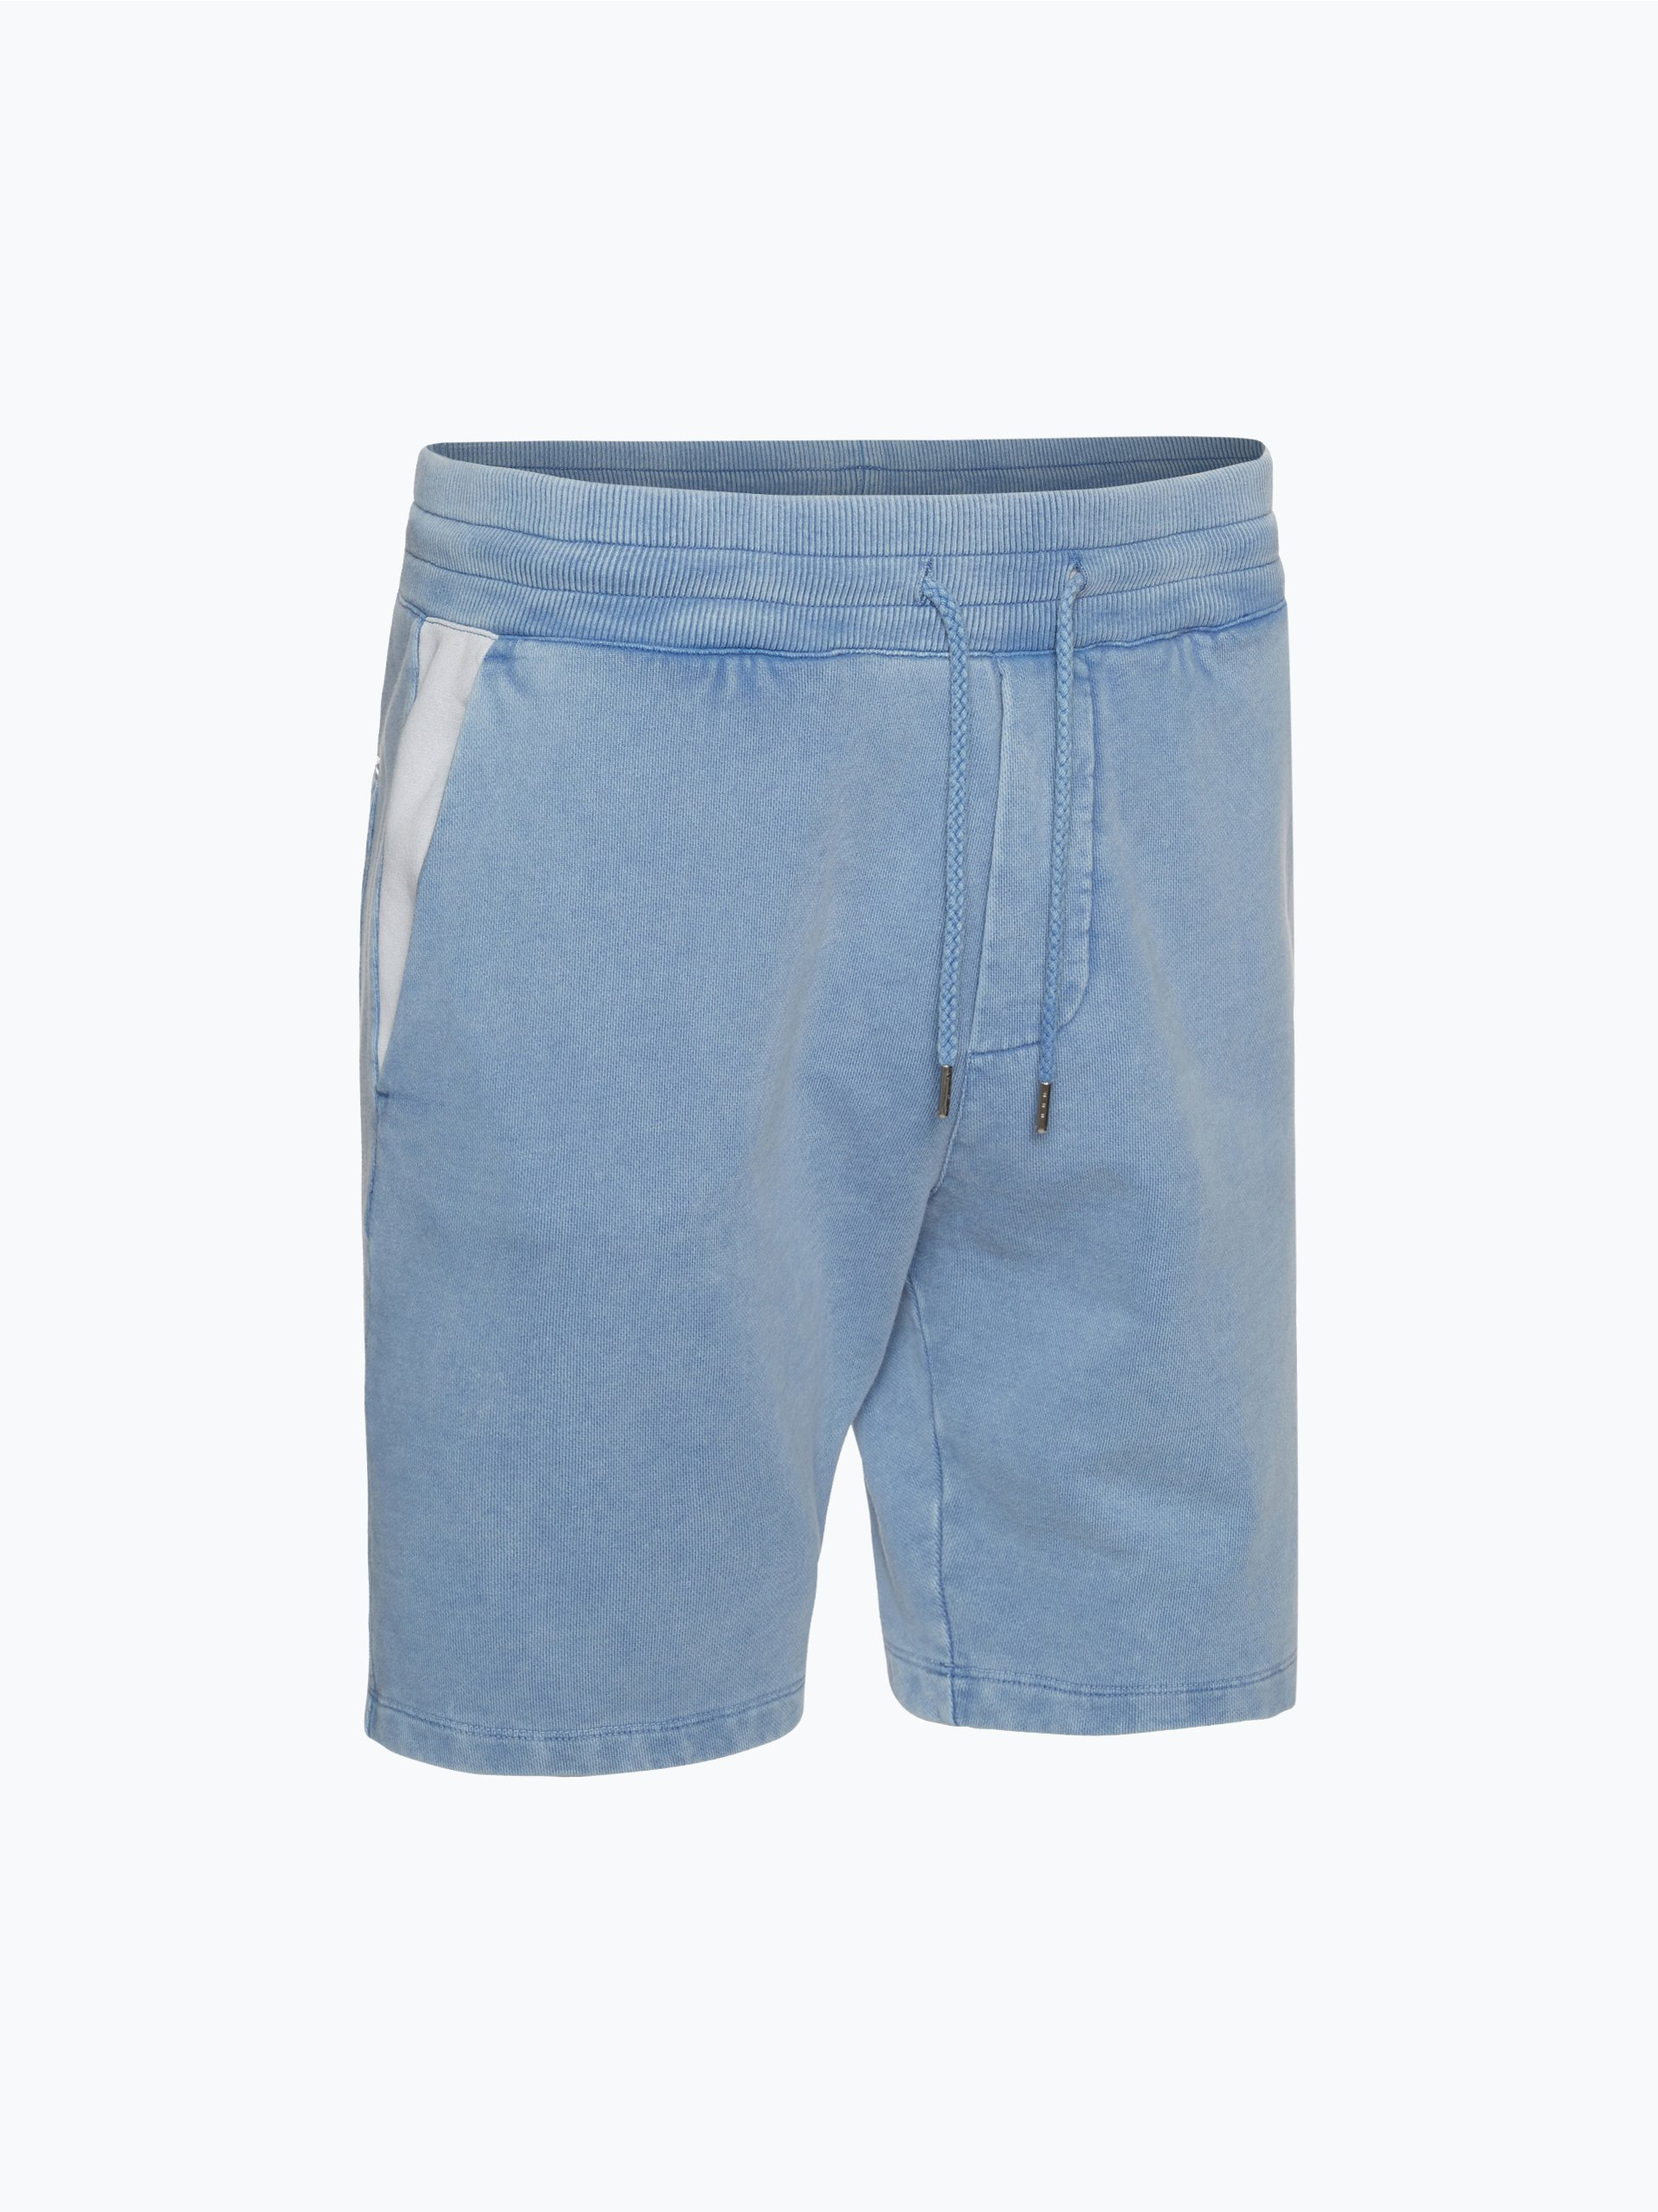 BOSS Orange Herren Shorts - Syd